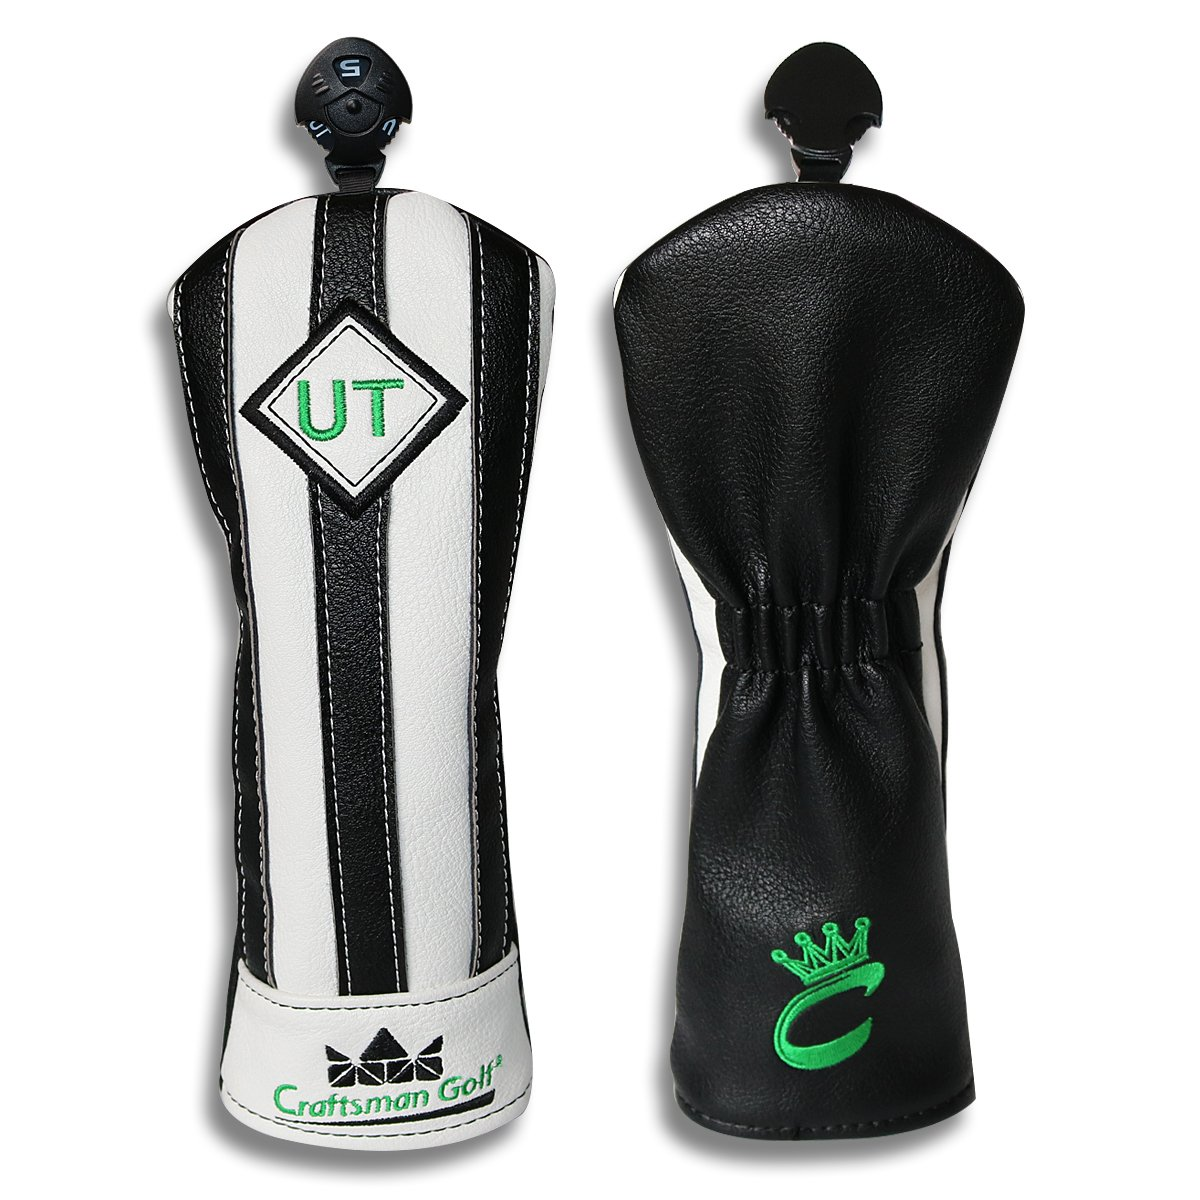 Craftsman Golf Black with White Stripes Series Golf Club Driver Wood UT Hybrid Head Cover Headcover (UT Hybird Cover)